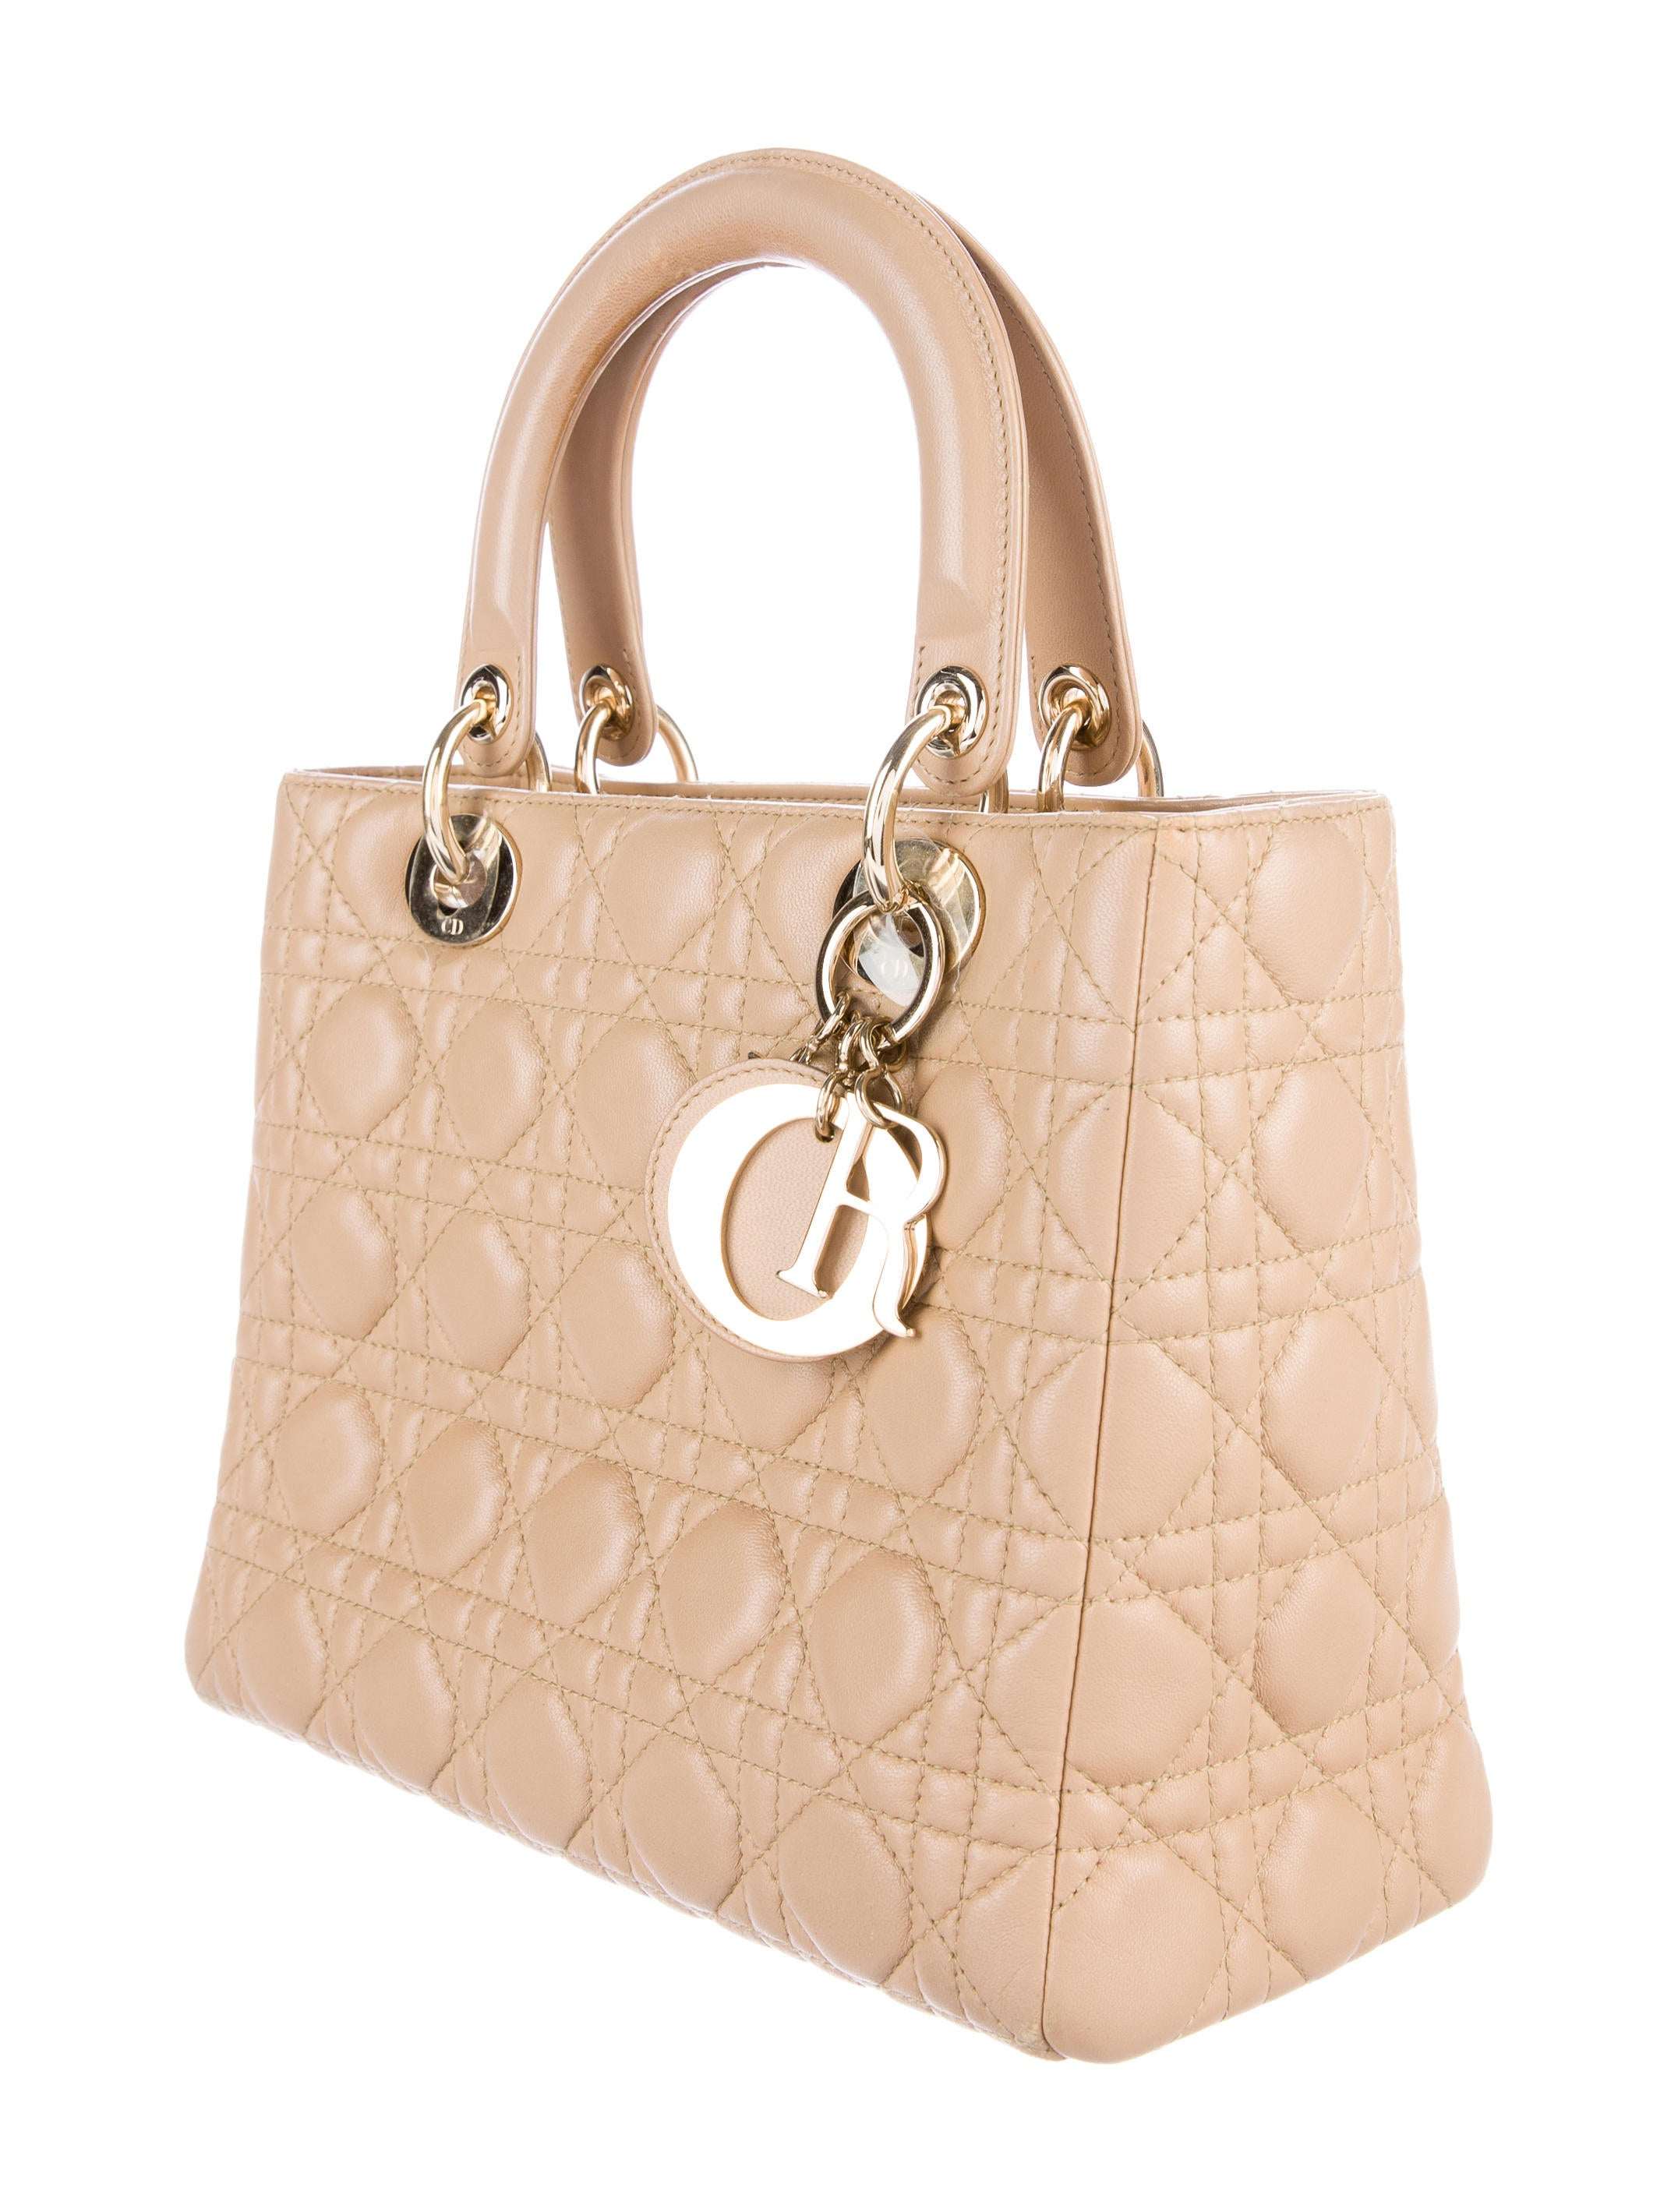 The Lady Bag offers a large selection of Authentic Louis Vuitton and Pre owned Louis Vuitton. Offering popular Louis Vuitton Purses, handbags and luggage for ev.